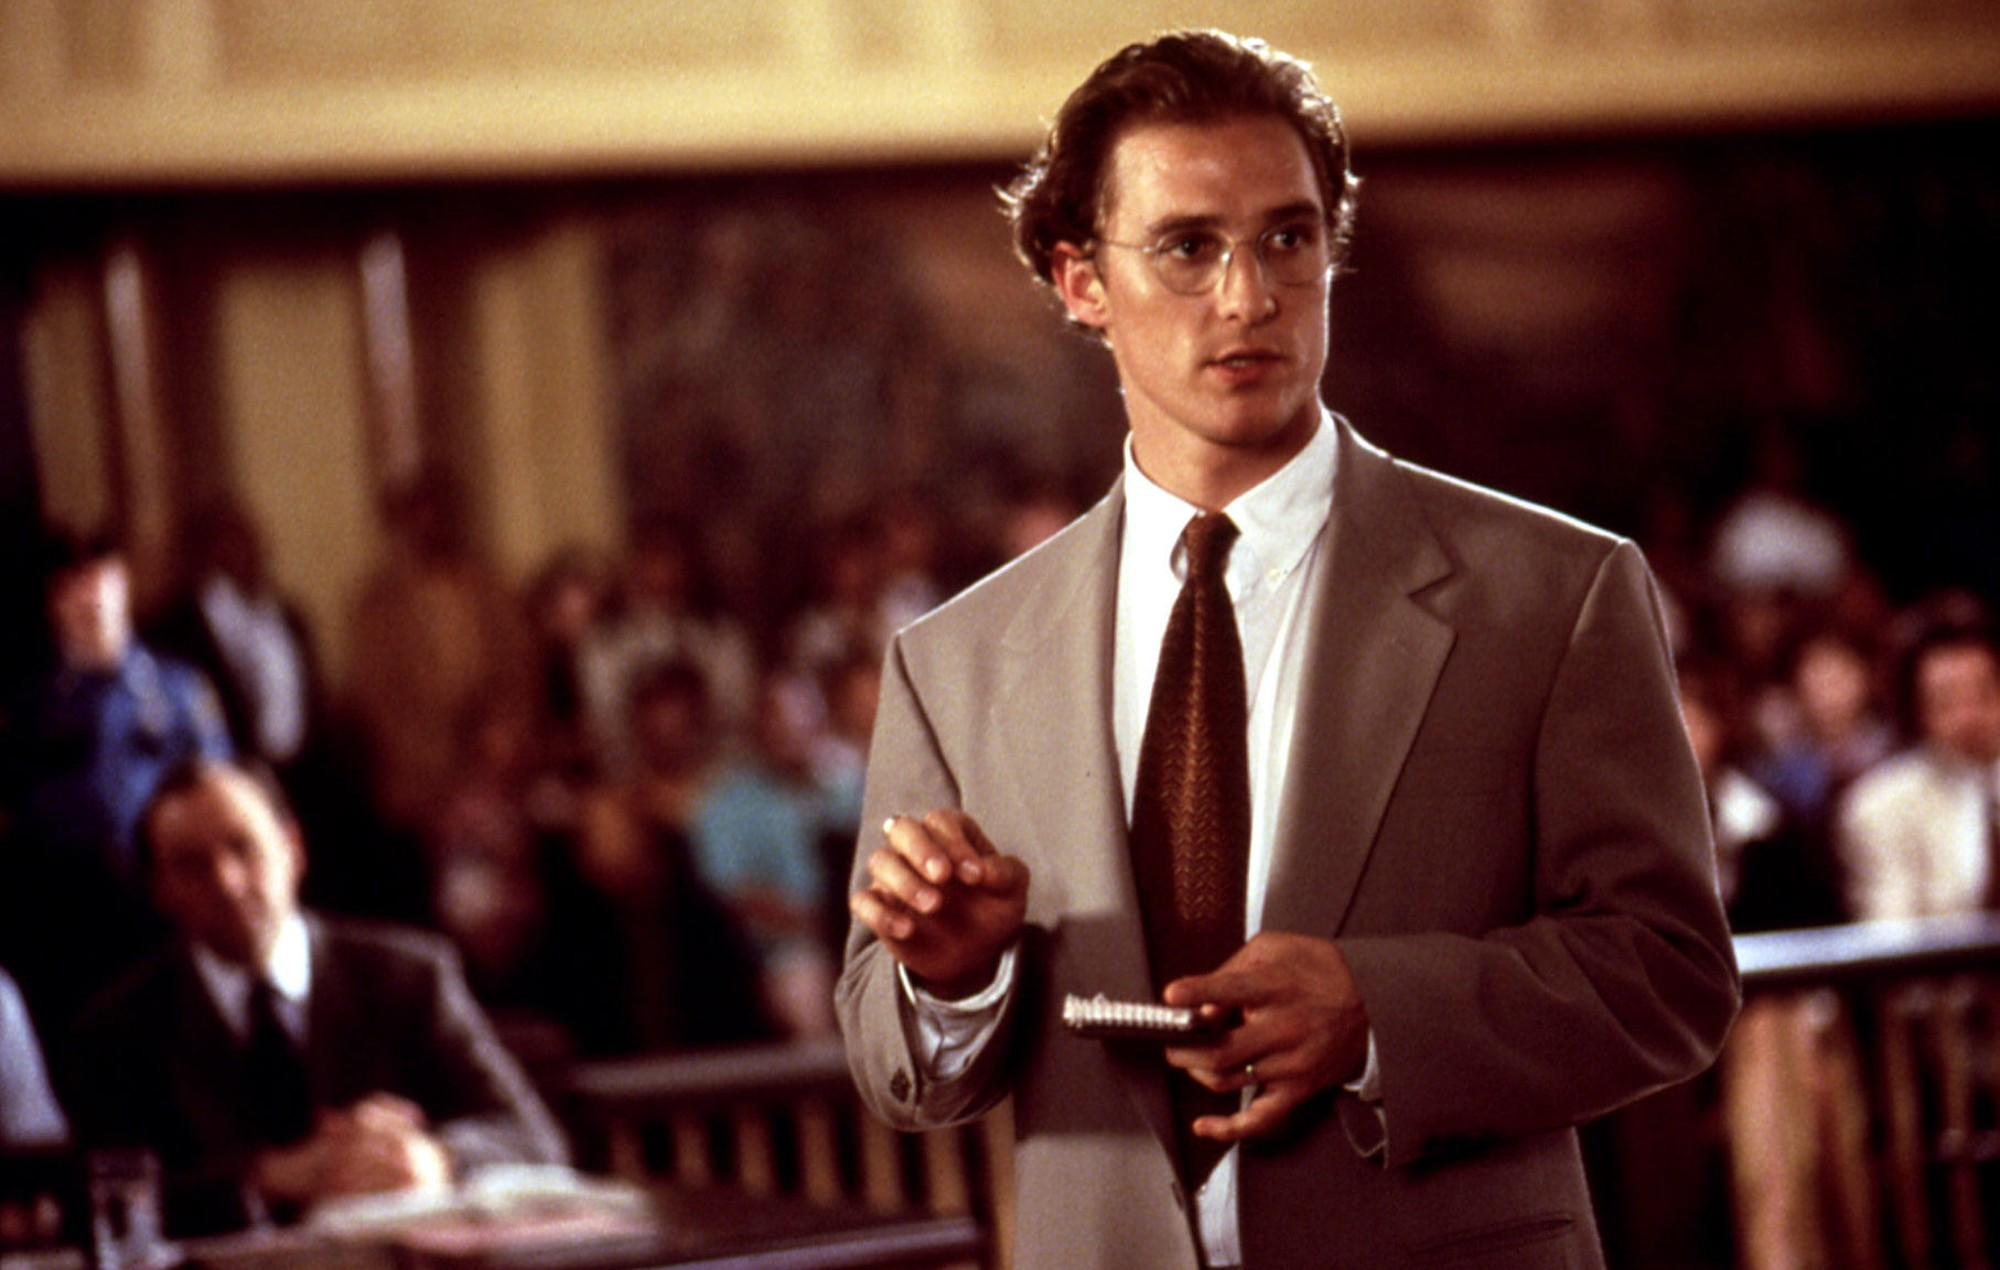 Matthew McConaughey in 'A Time To Kill'